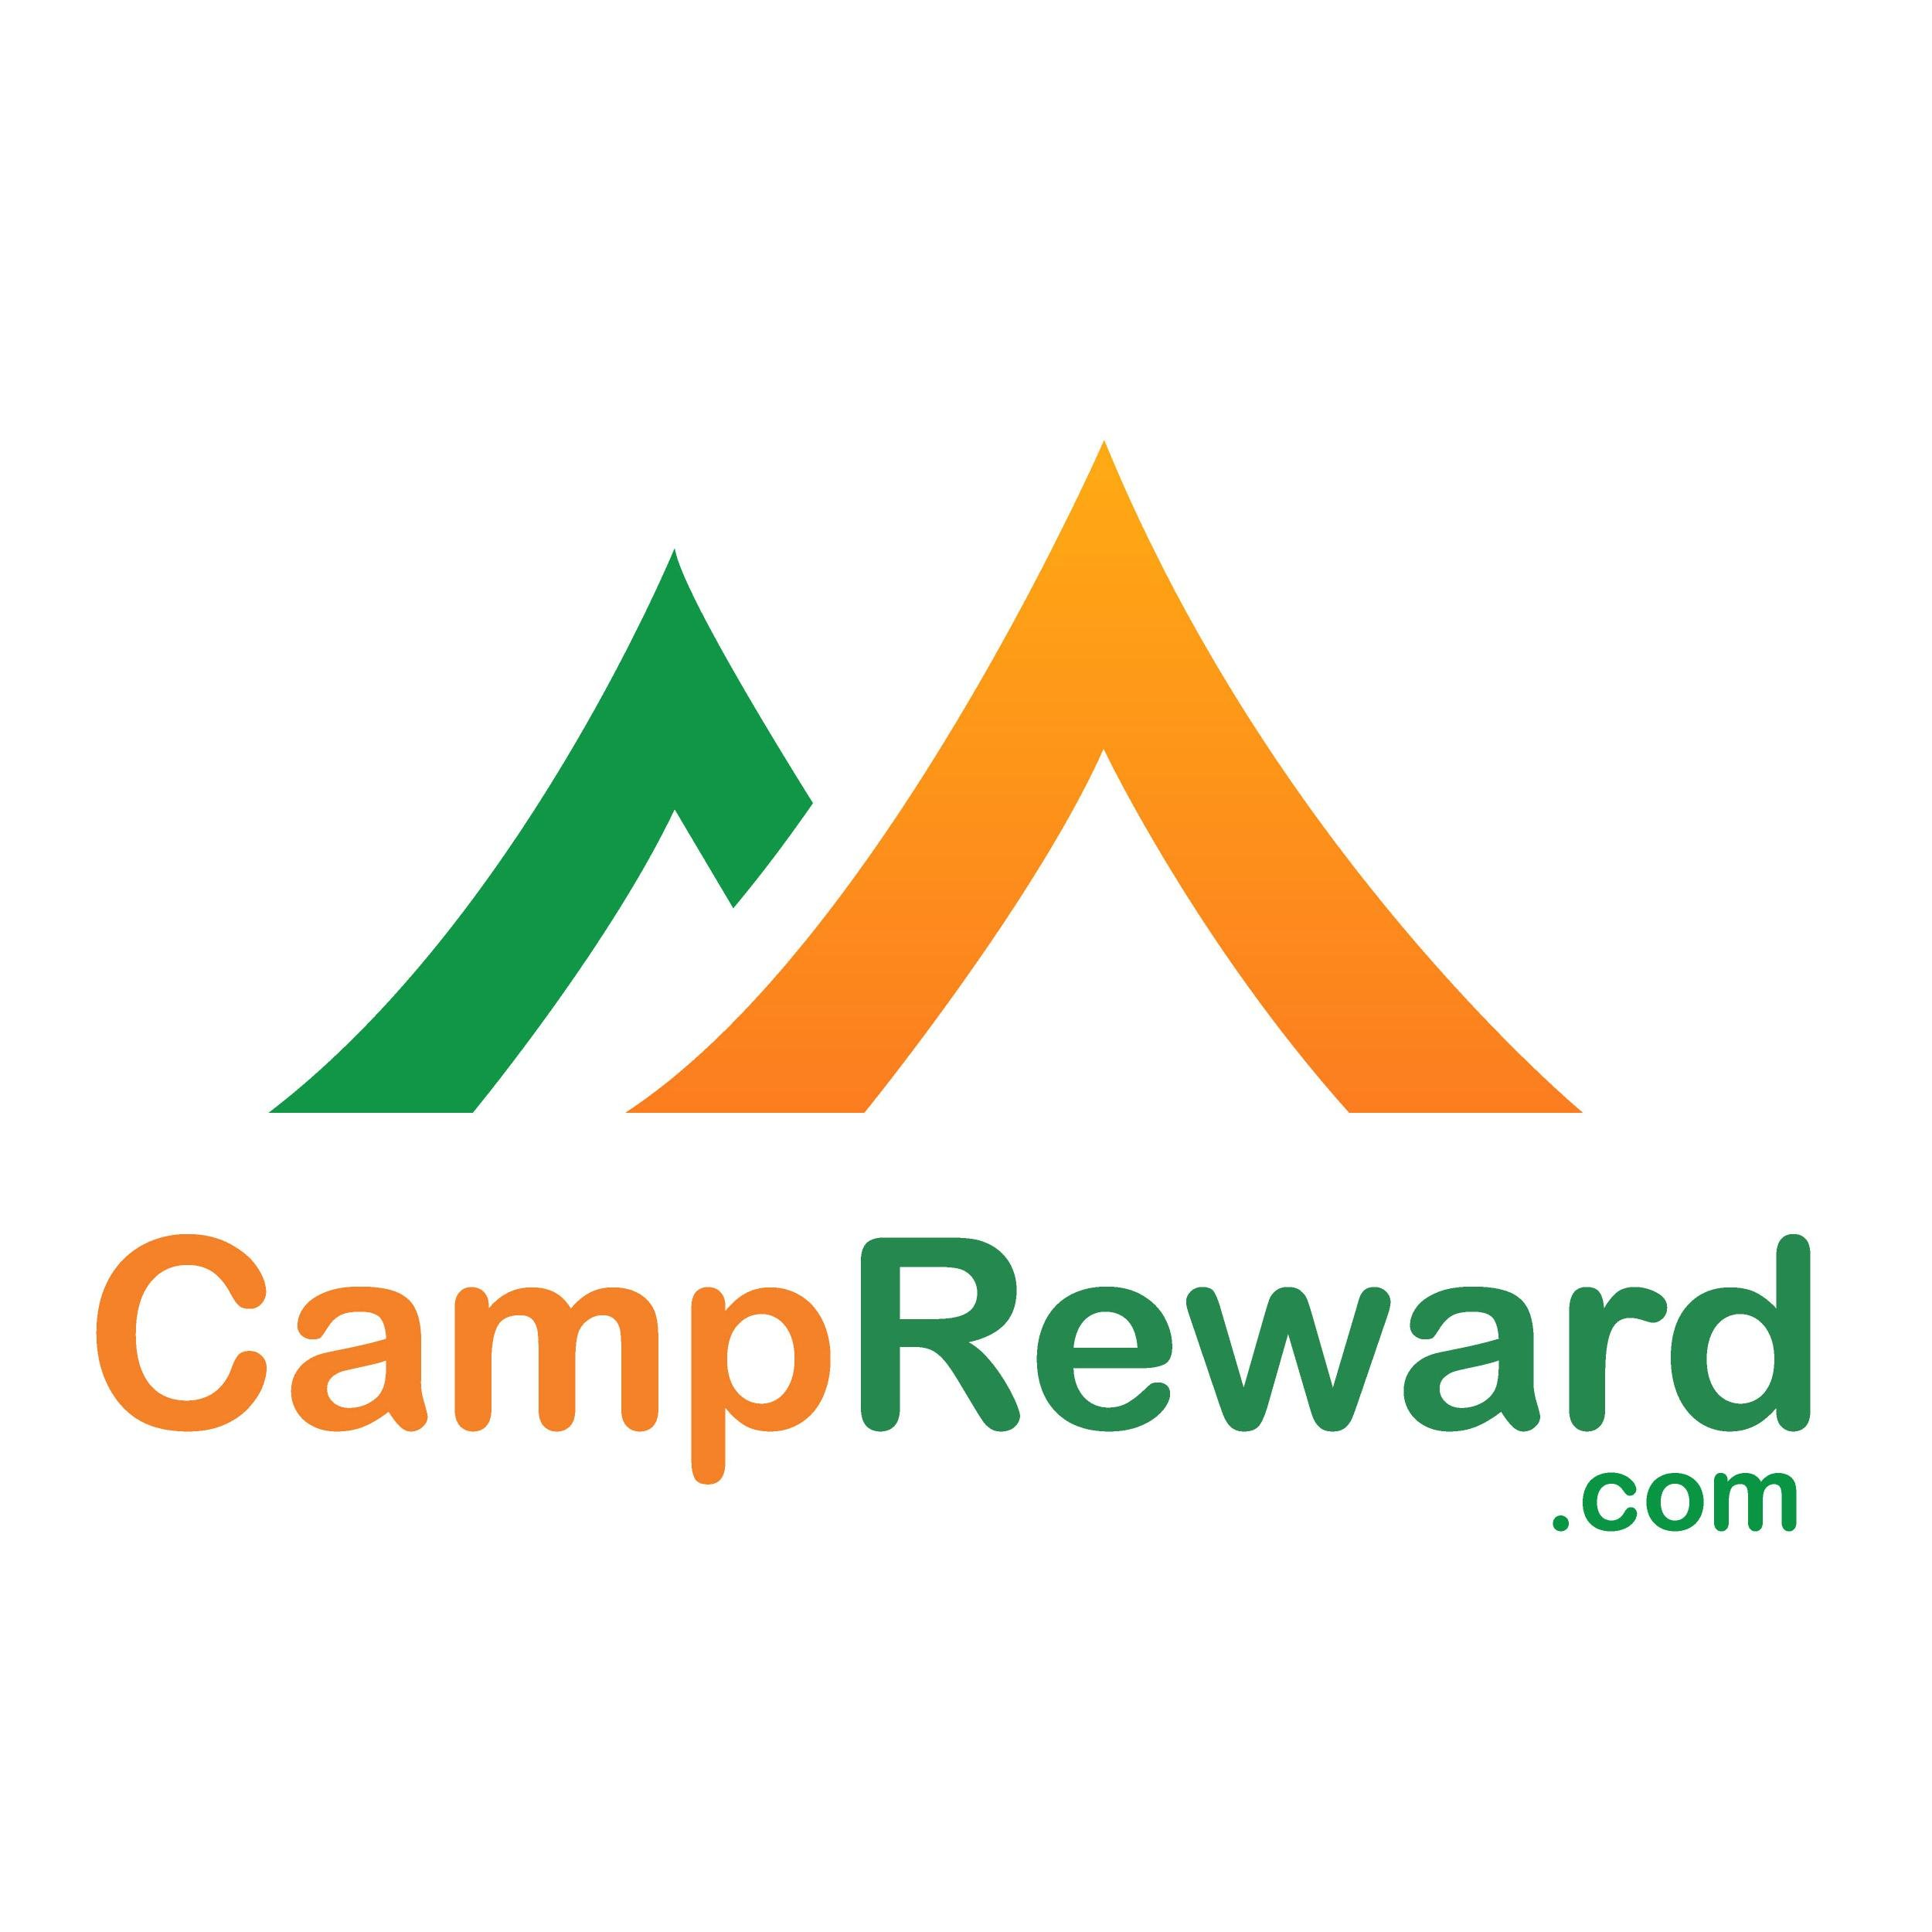 CampReward.com